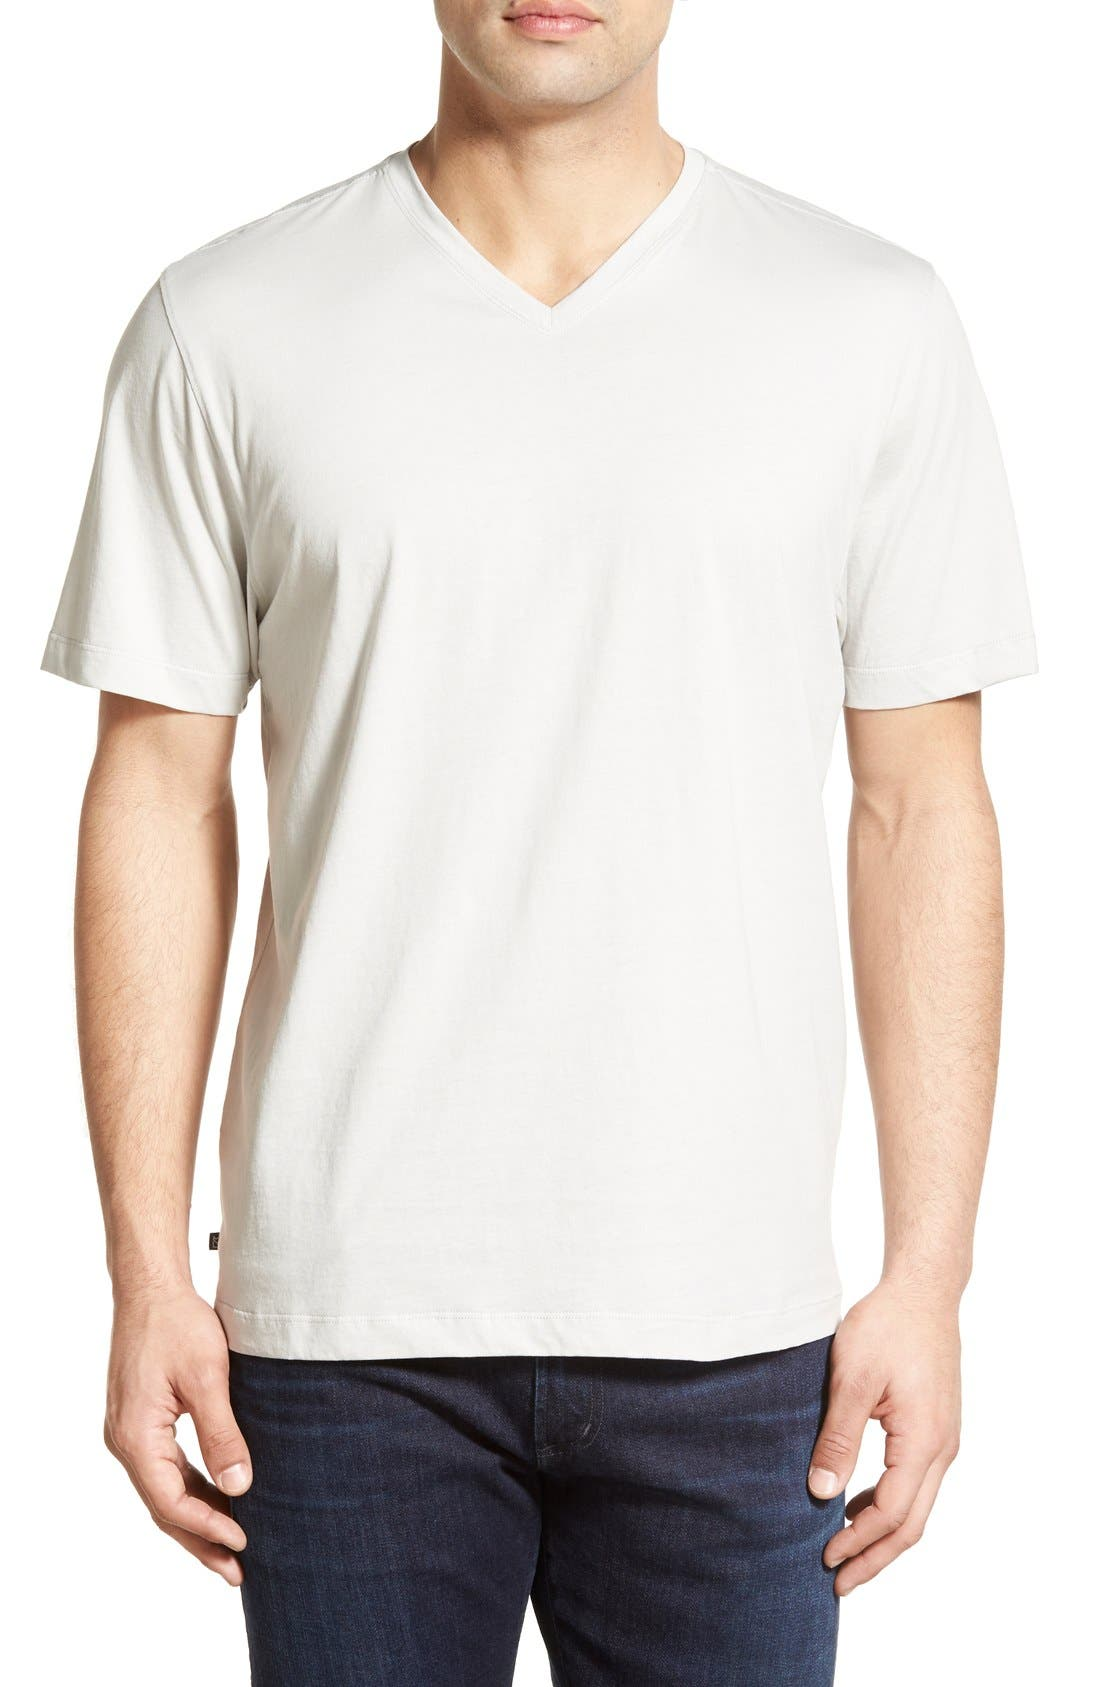 Cutter & Buck 'Sida' V-Neck T-Shirt (Big & Tall)